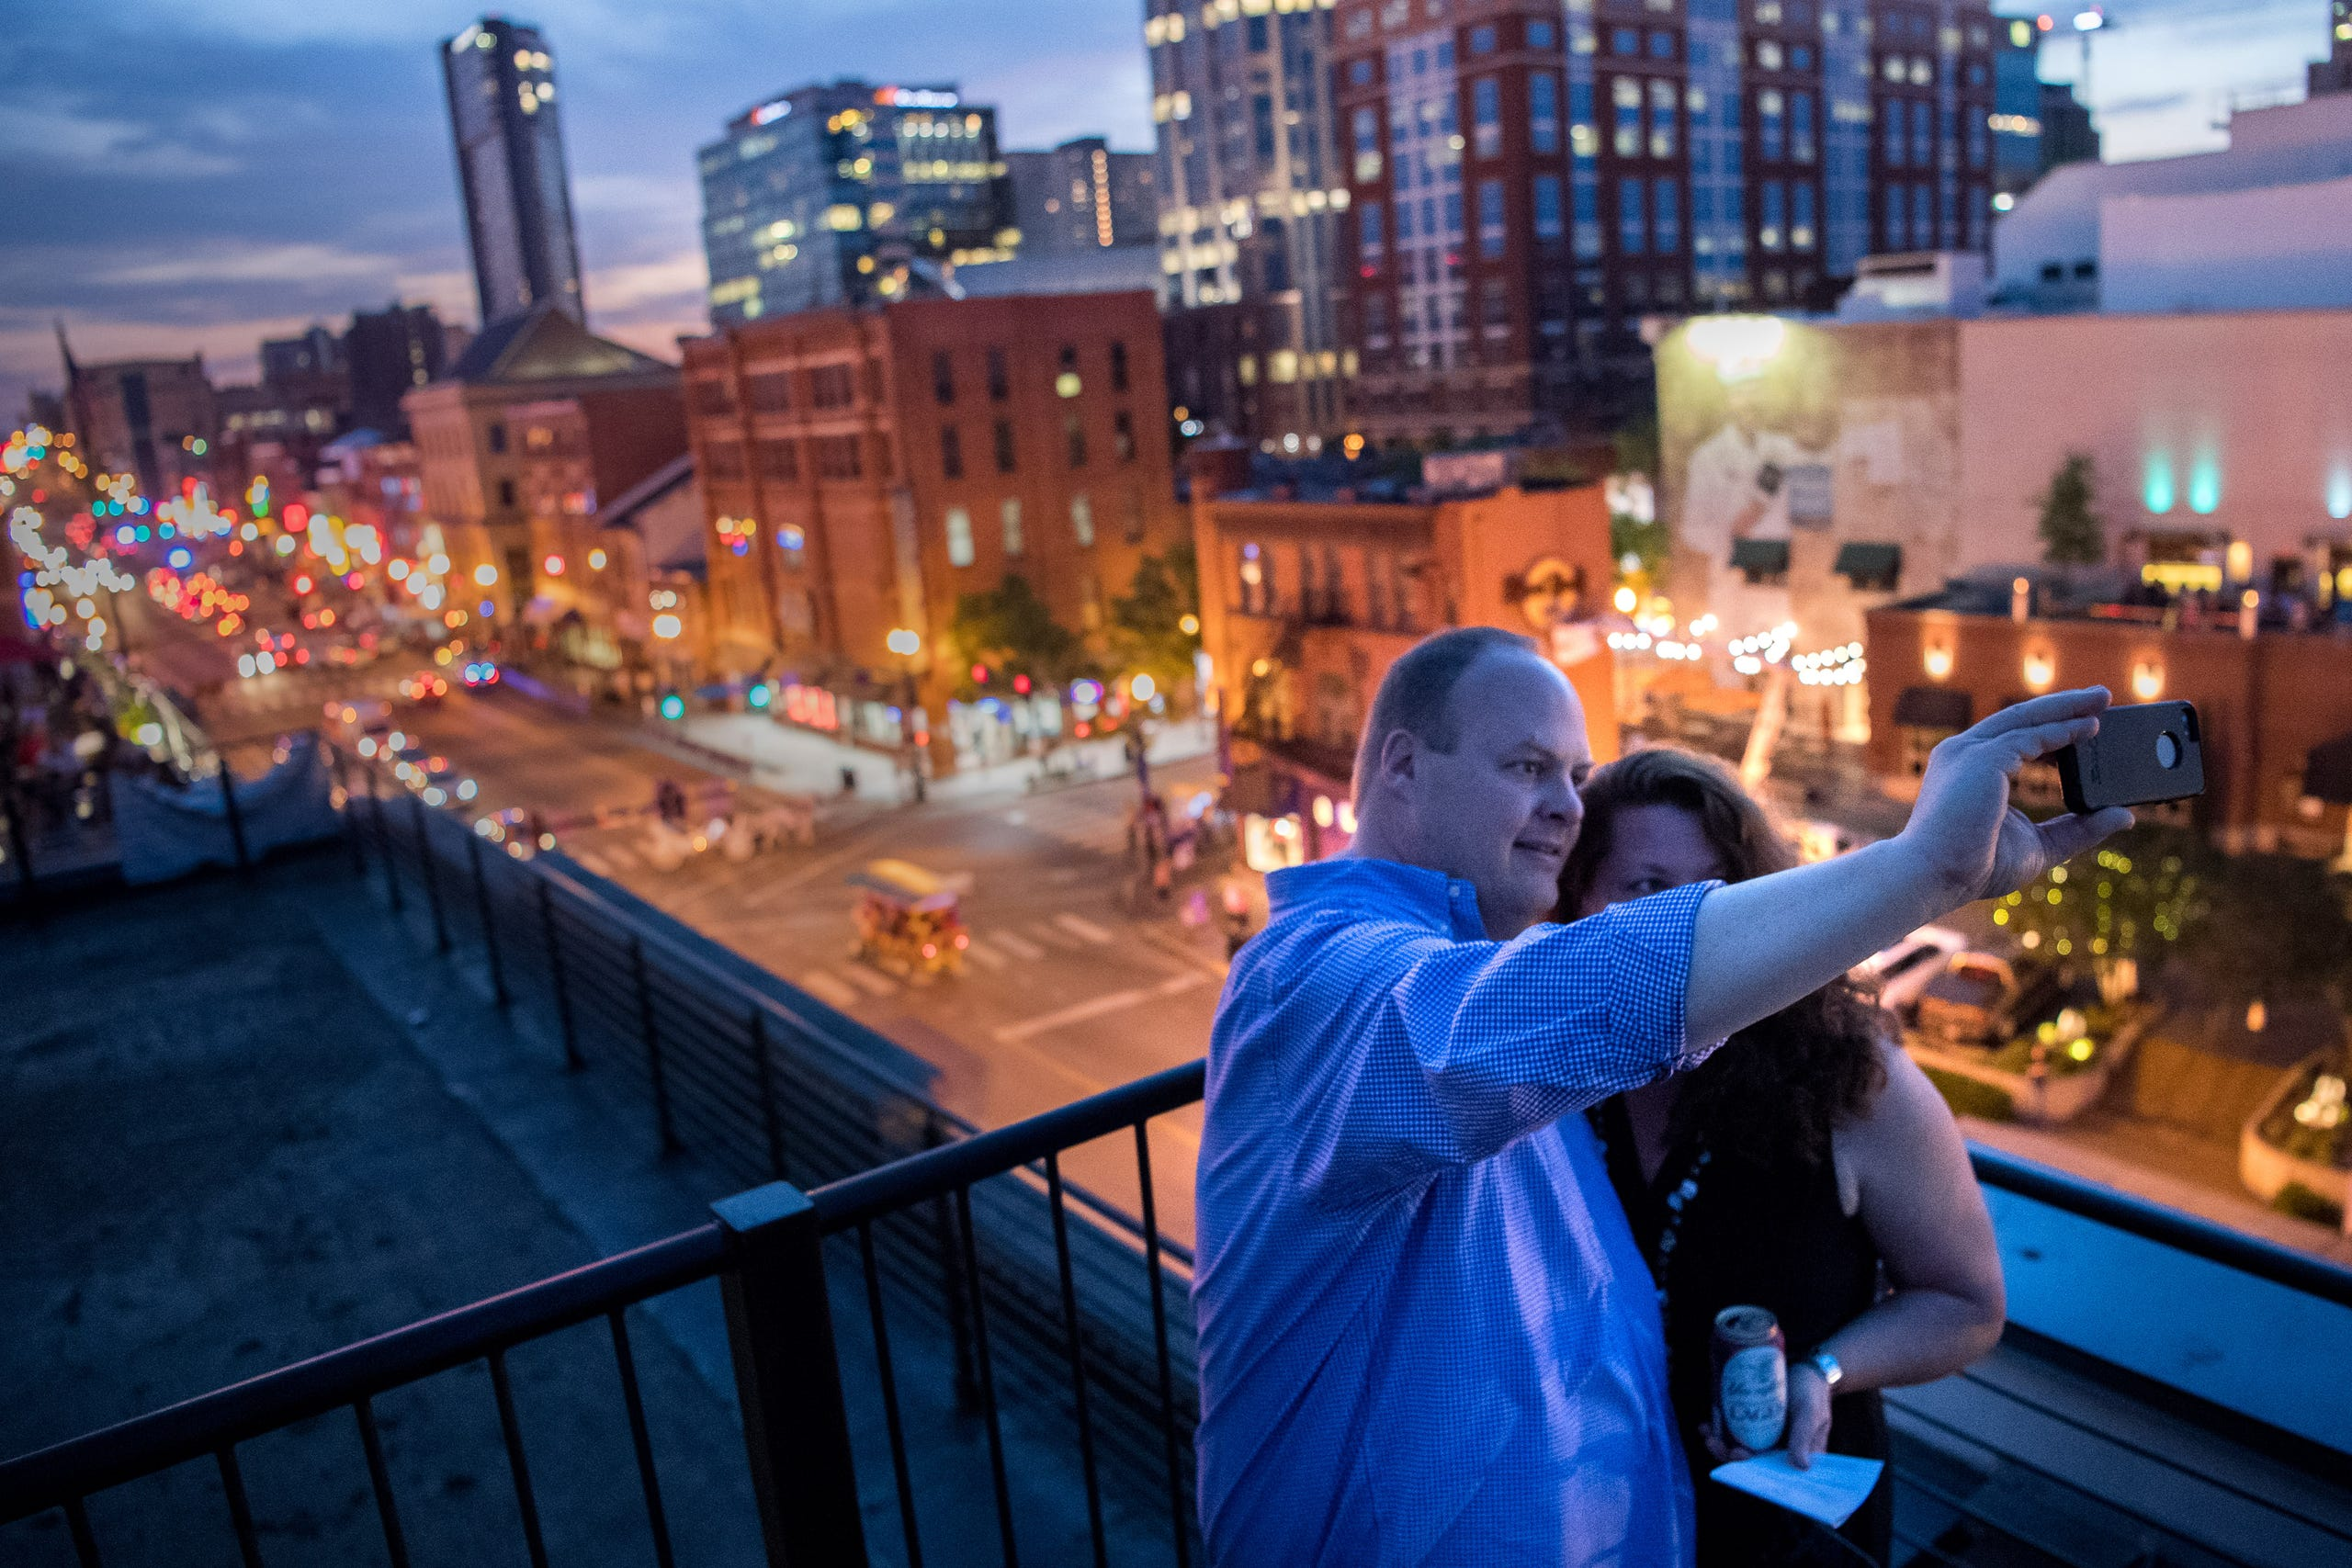 Nashville rooftops offer drinks and a view